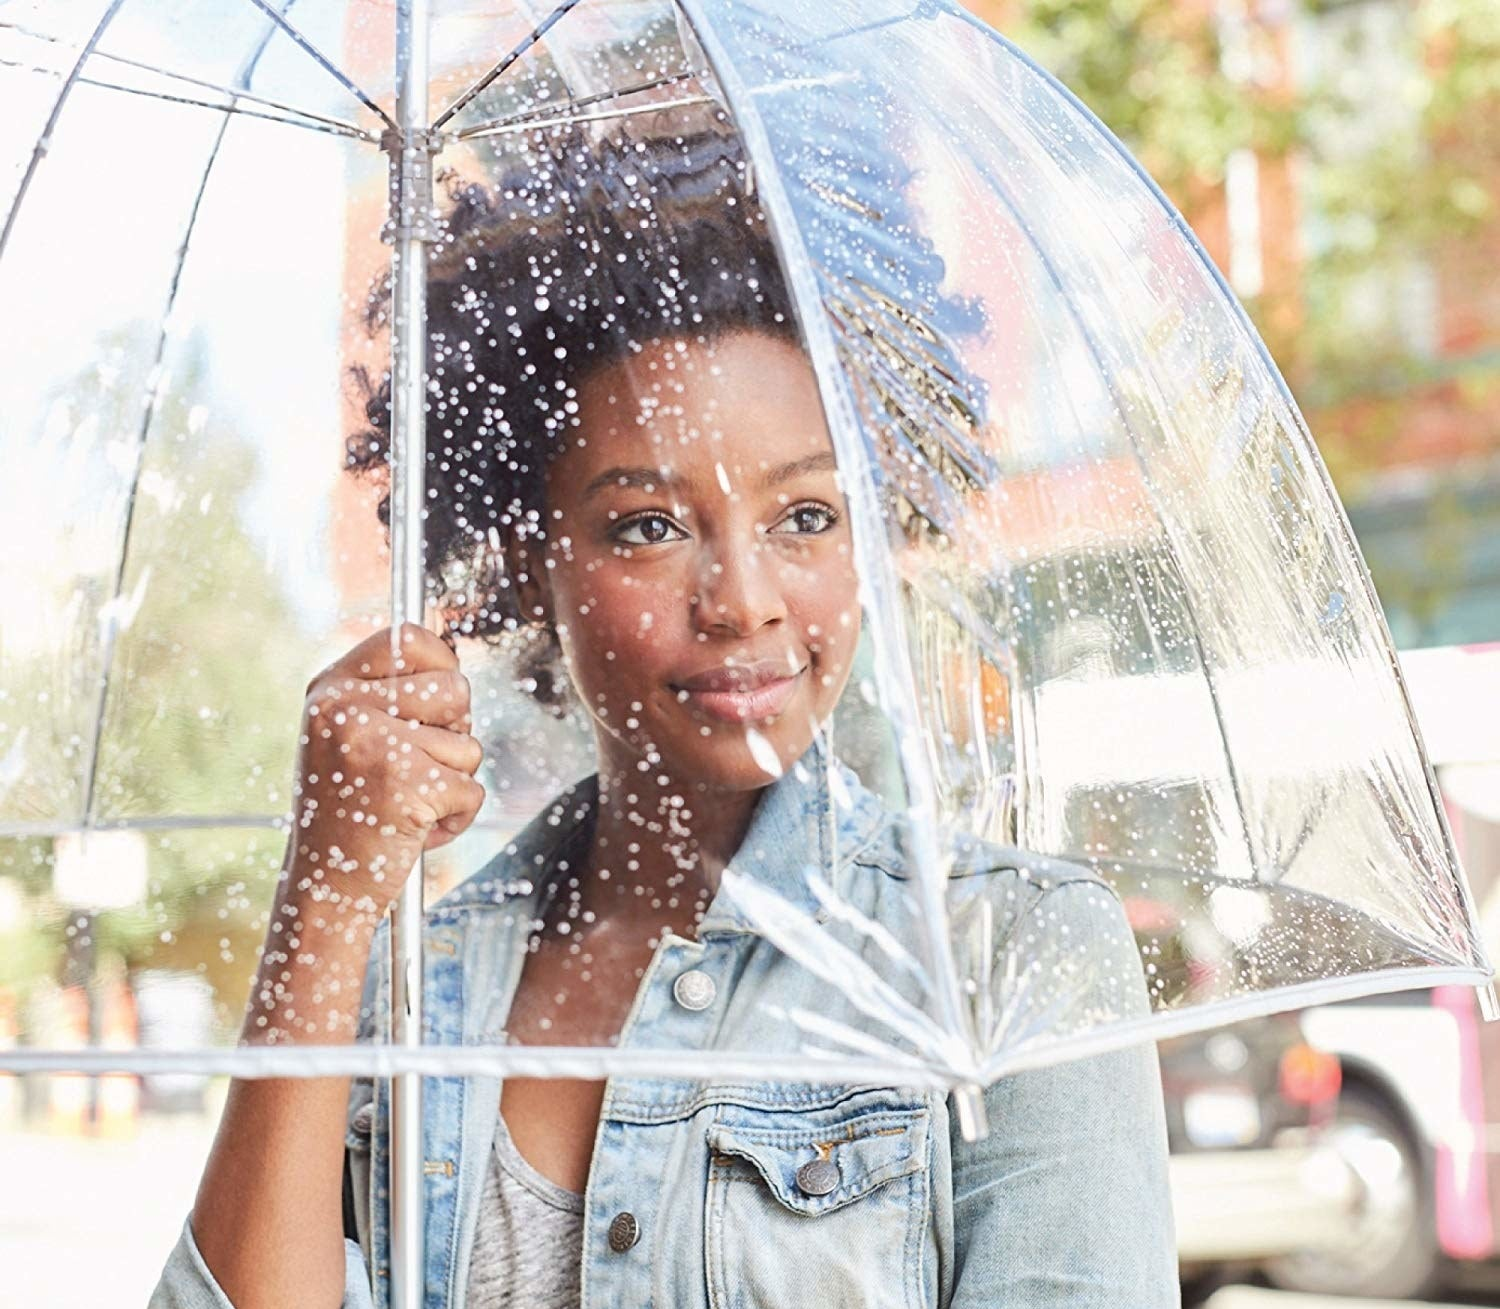 A model in the umbrella that comes down slightly below their shoulders